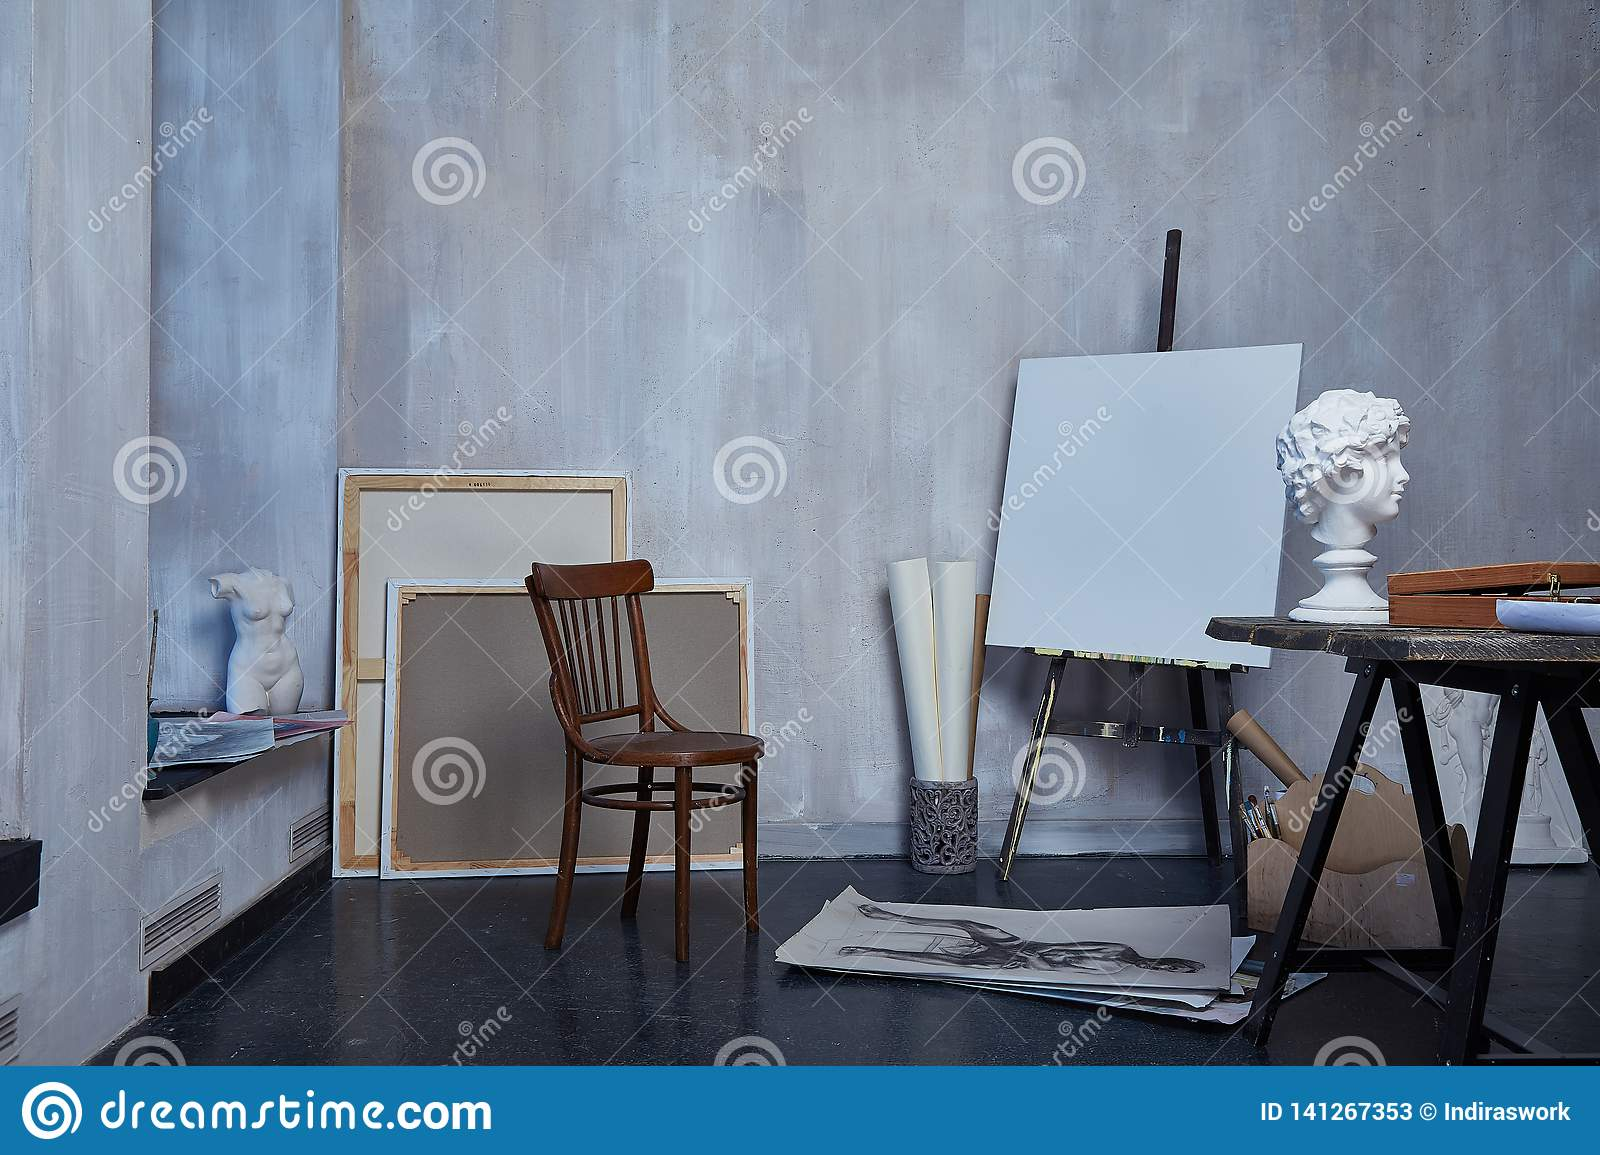 Interior Room Art Workshop Artist Painting Drawing Sculpture Sculptor Canvas Or Museum Paint Studio Editorial Stock Photo Image Of Workshop Drawing 141267353